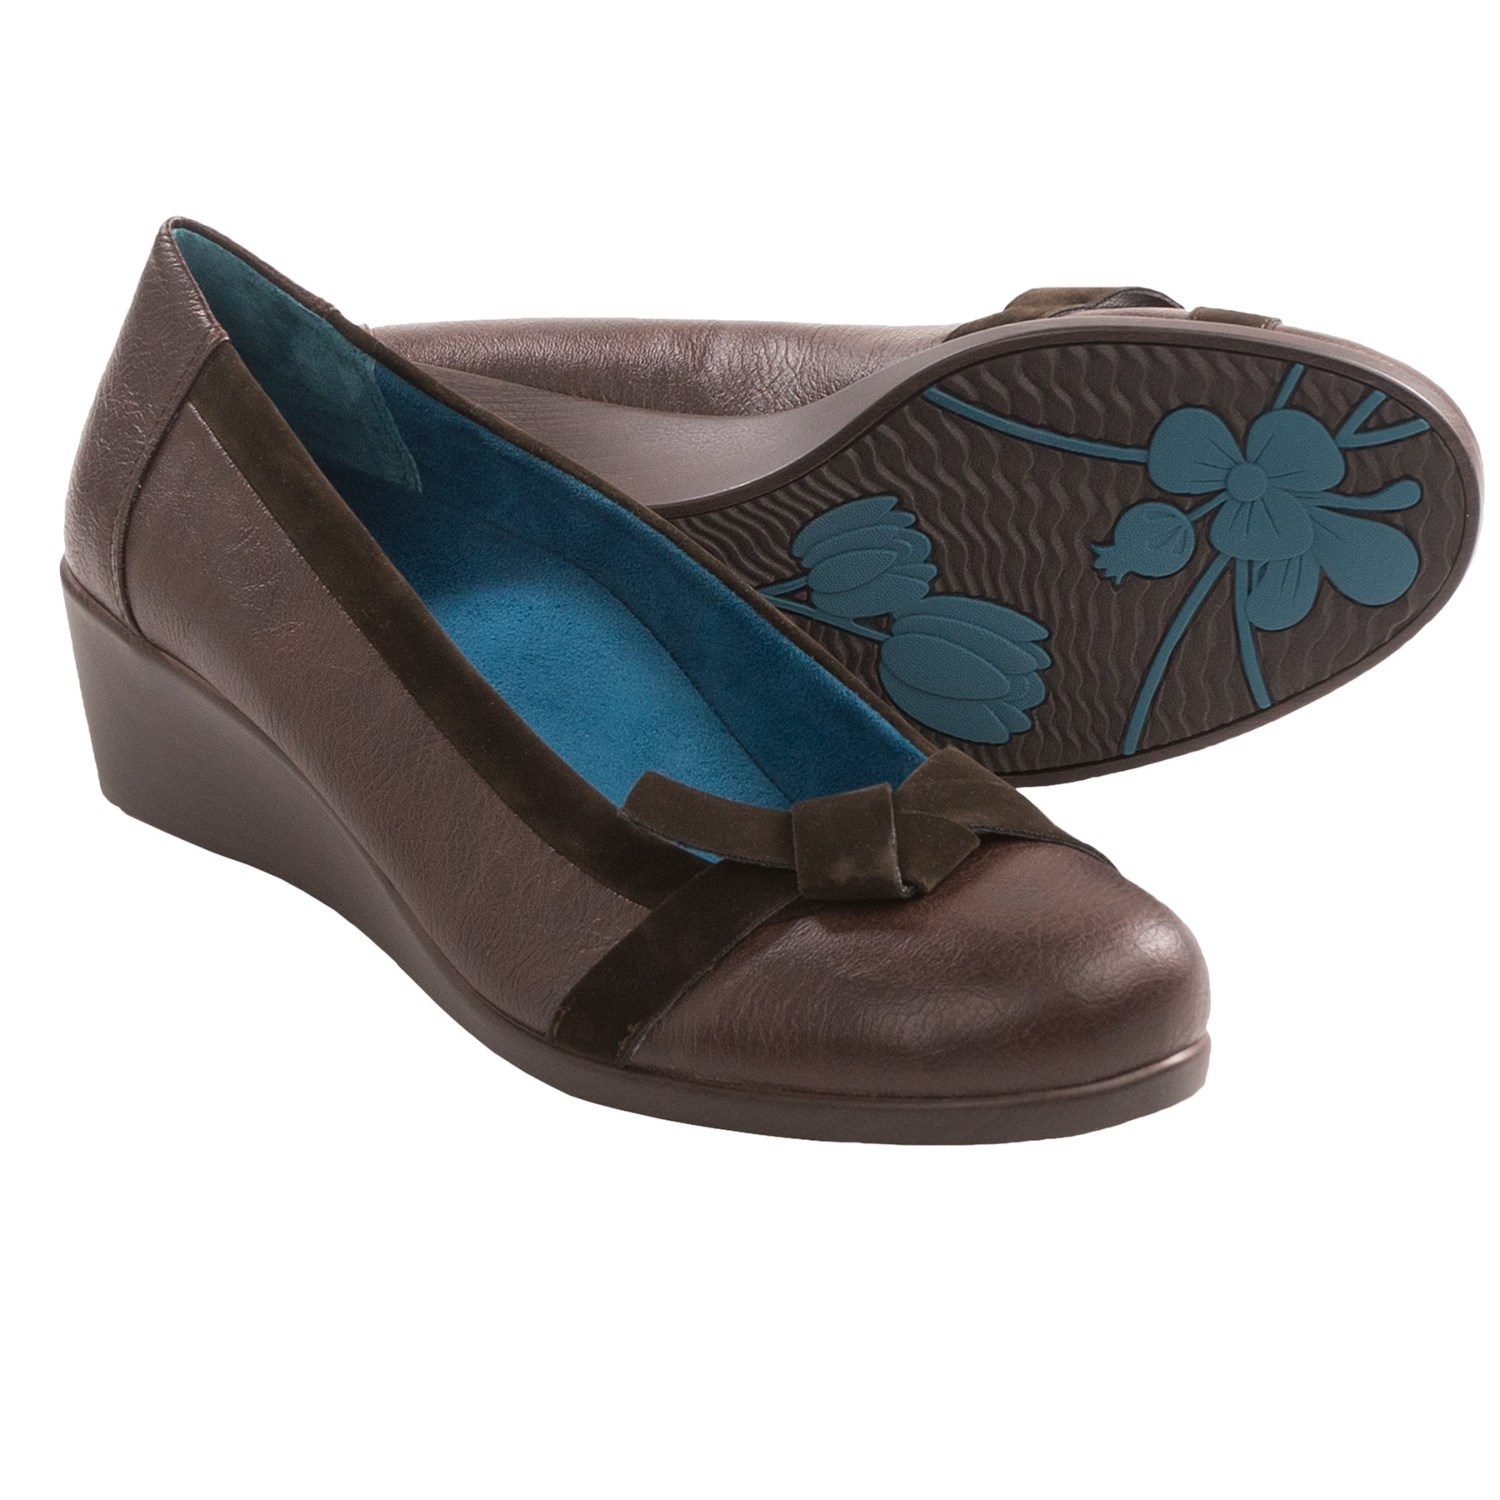 Orthaheel Chloe Wedge Shoes (For Women) in Chocolate